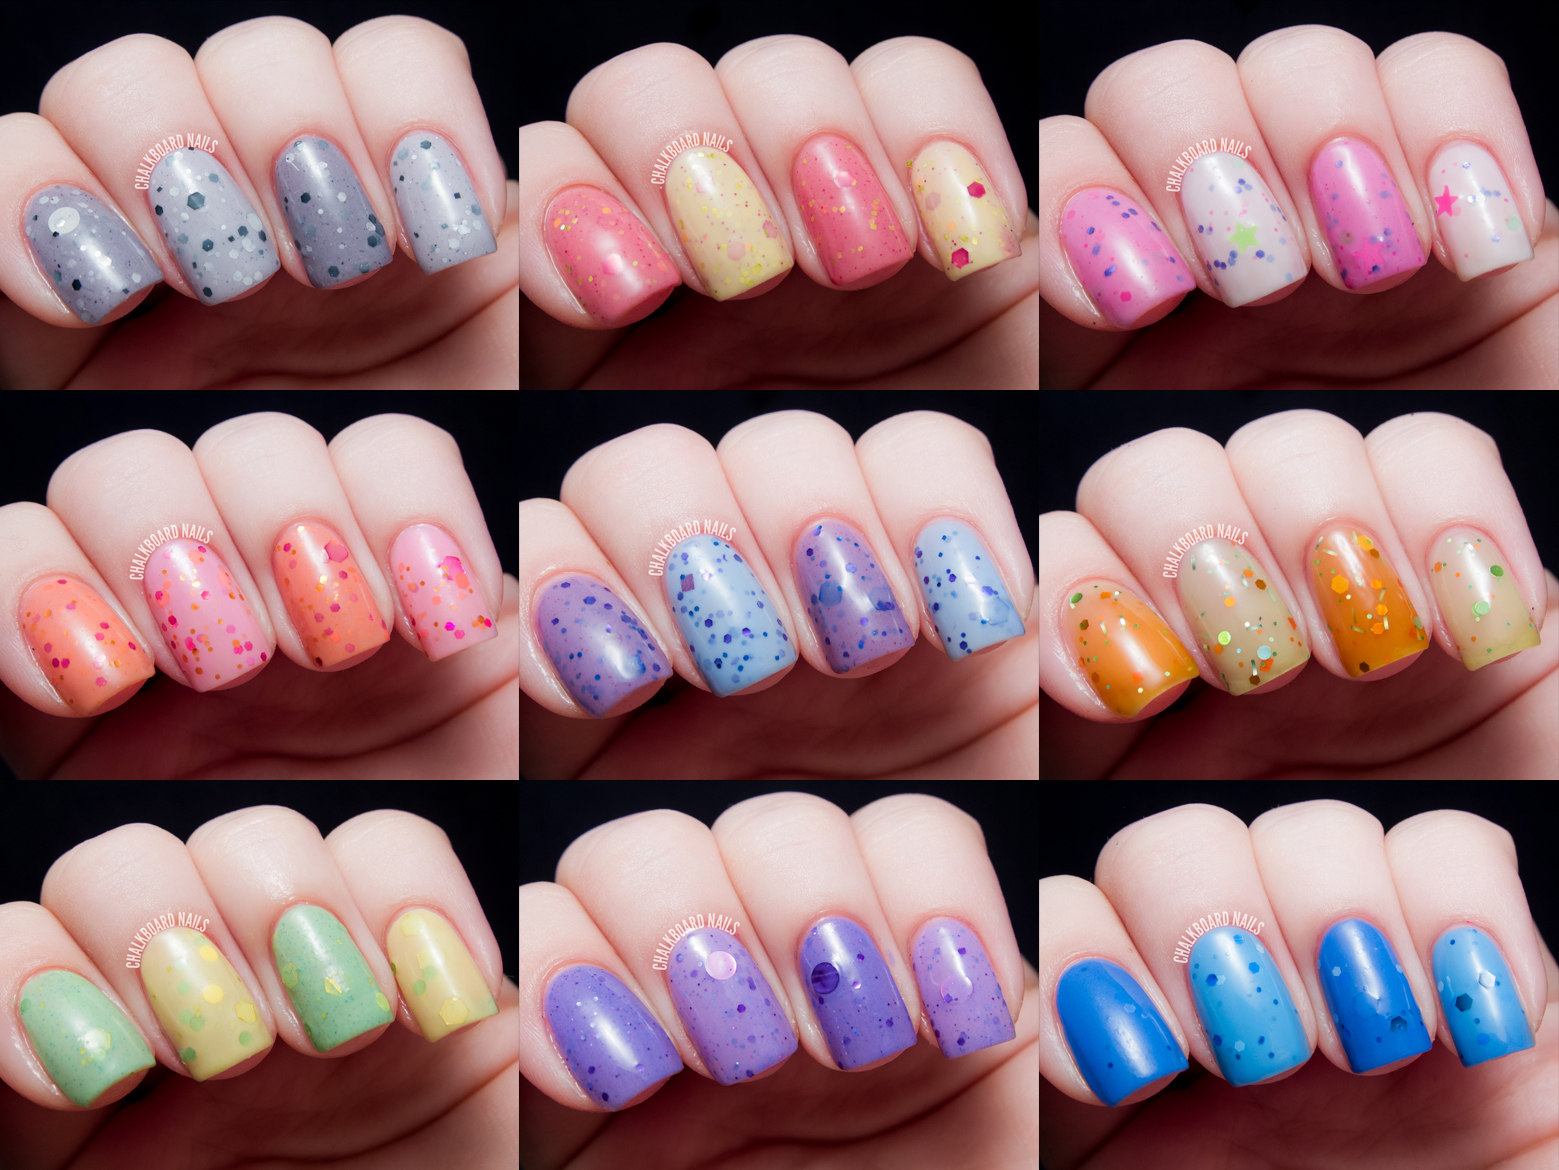 Polish Me Silly Thermal Nail Polishes Formerly Lush Lacquer